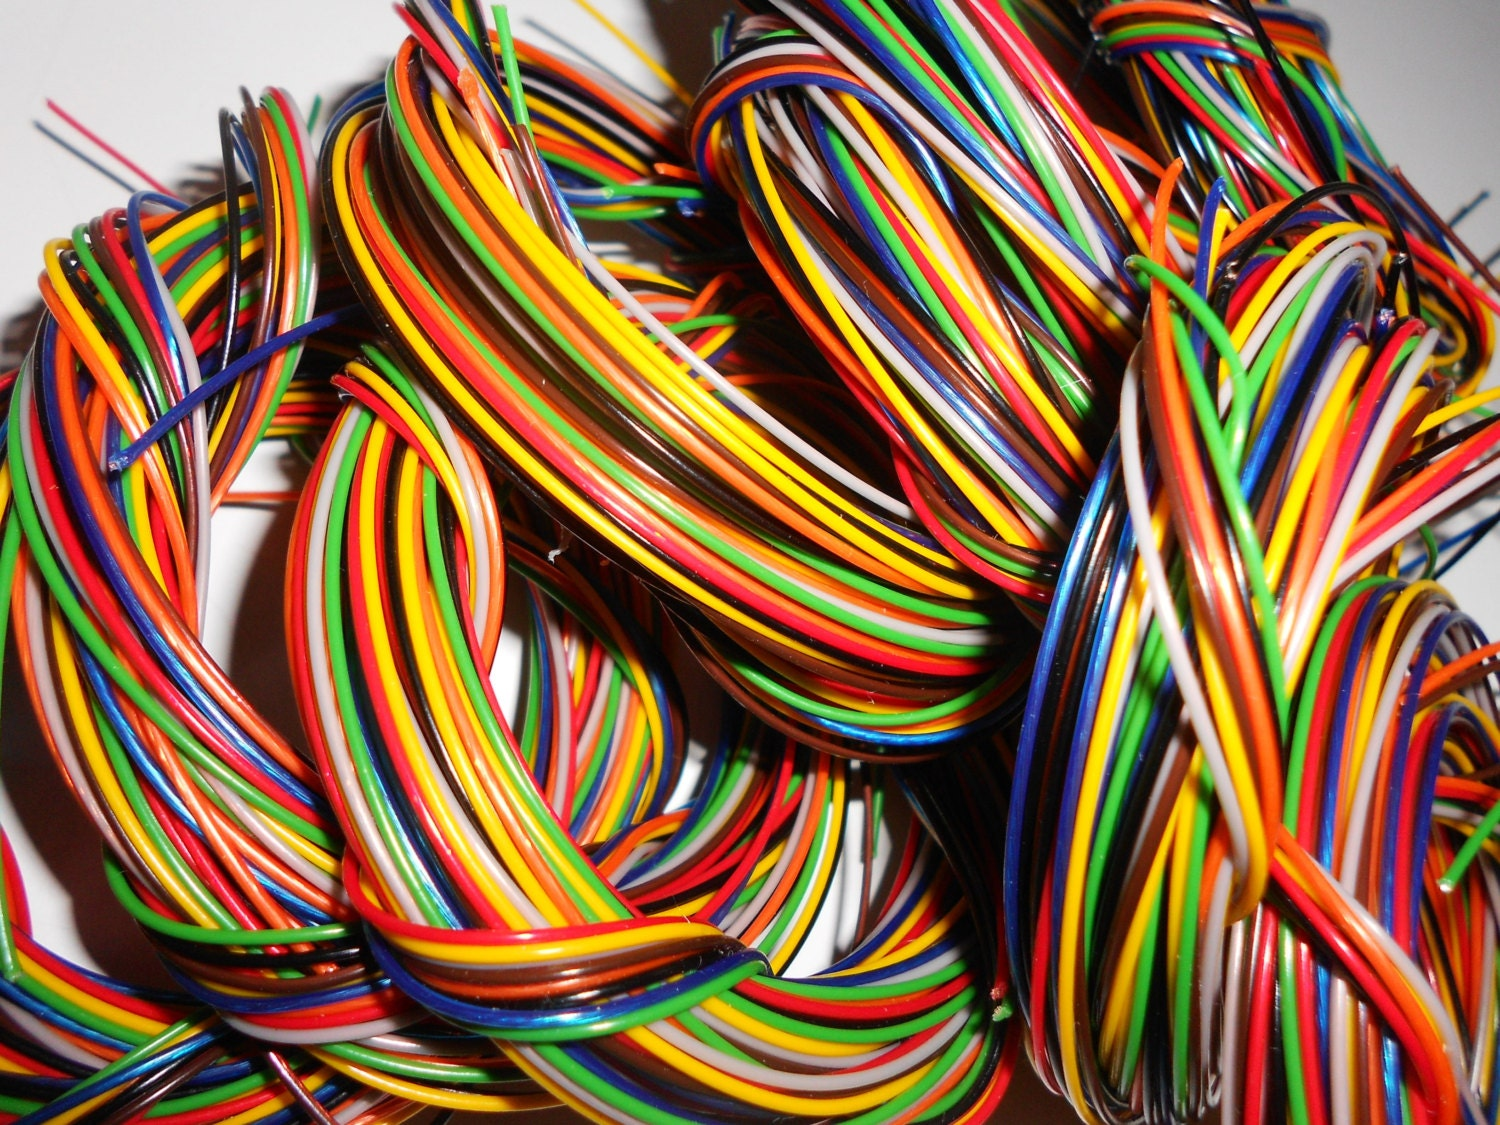 Telephone Wire Craft Supply Plastic Coated Copper Wire Strands